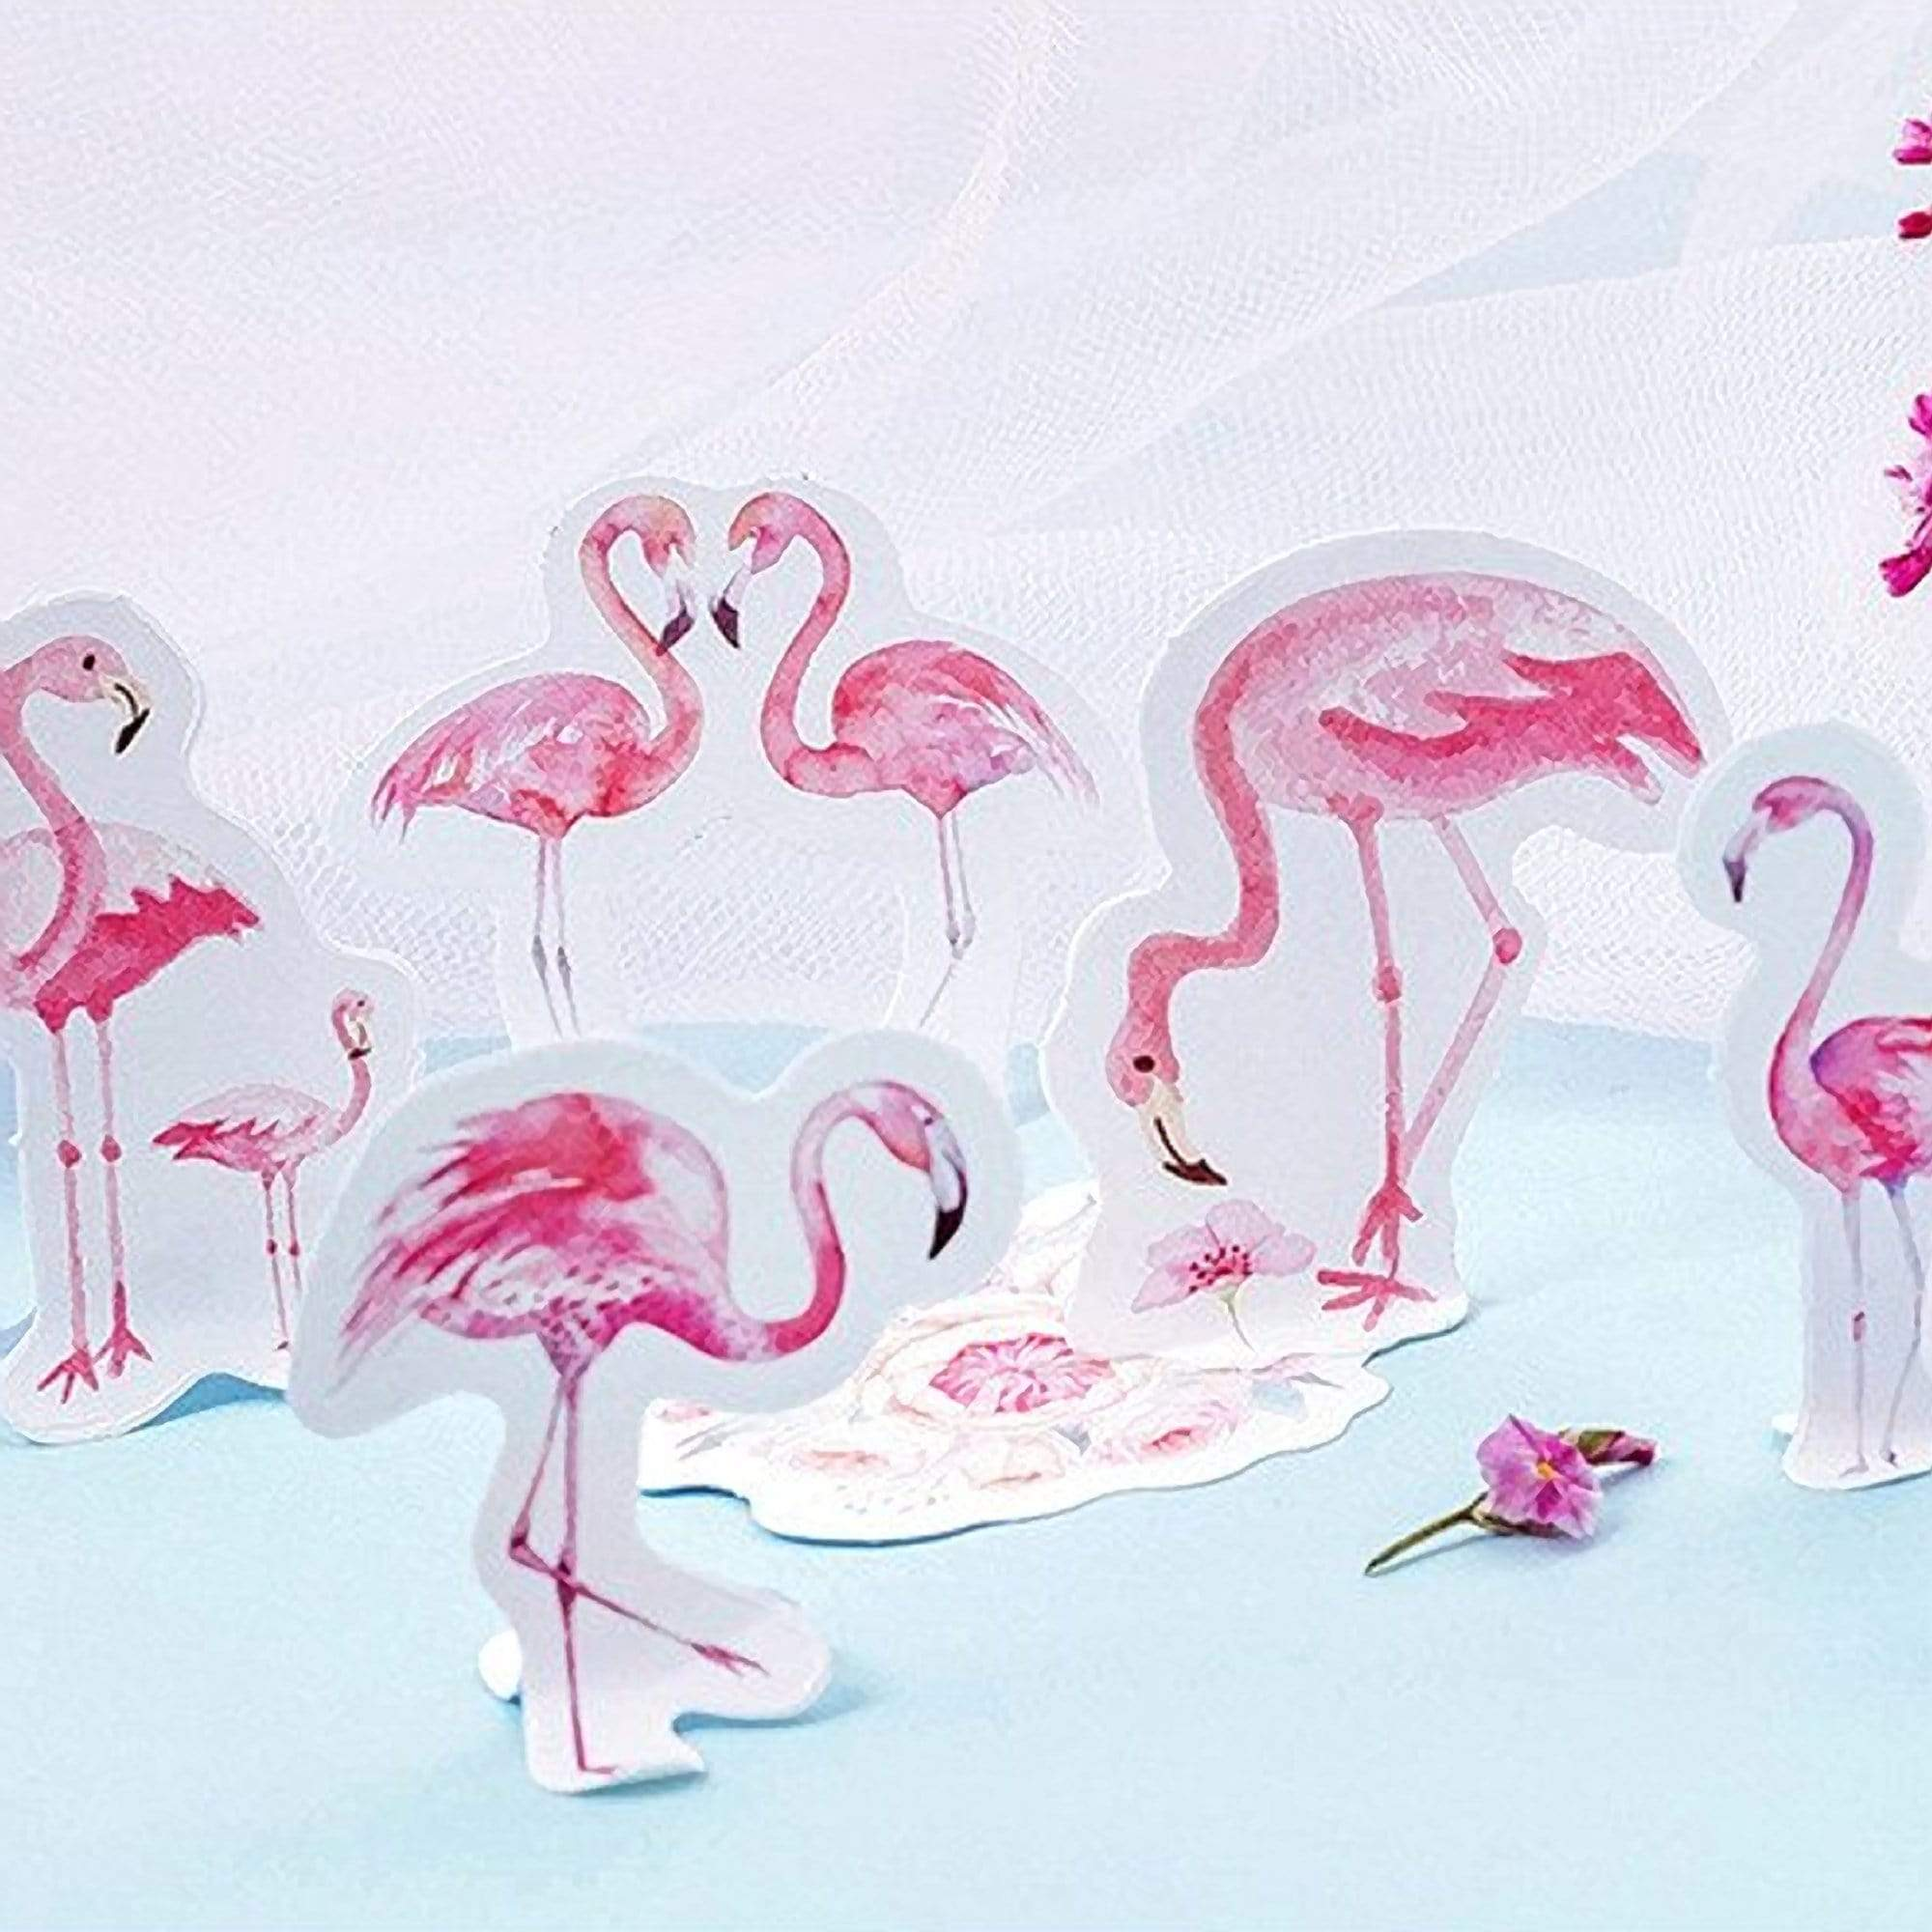 Premium Die-Cut Stickers Pink Flamingo - The Stationery Life!